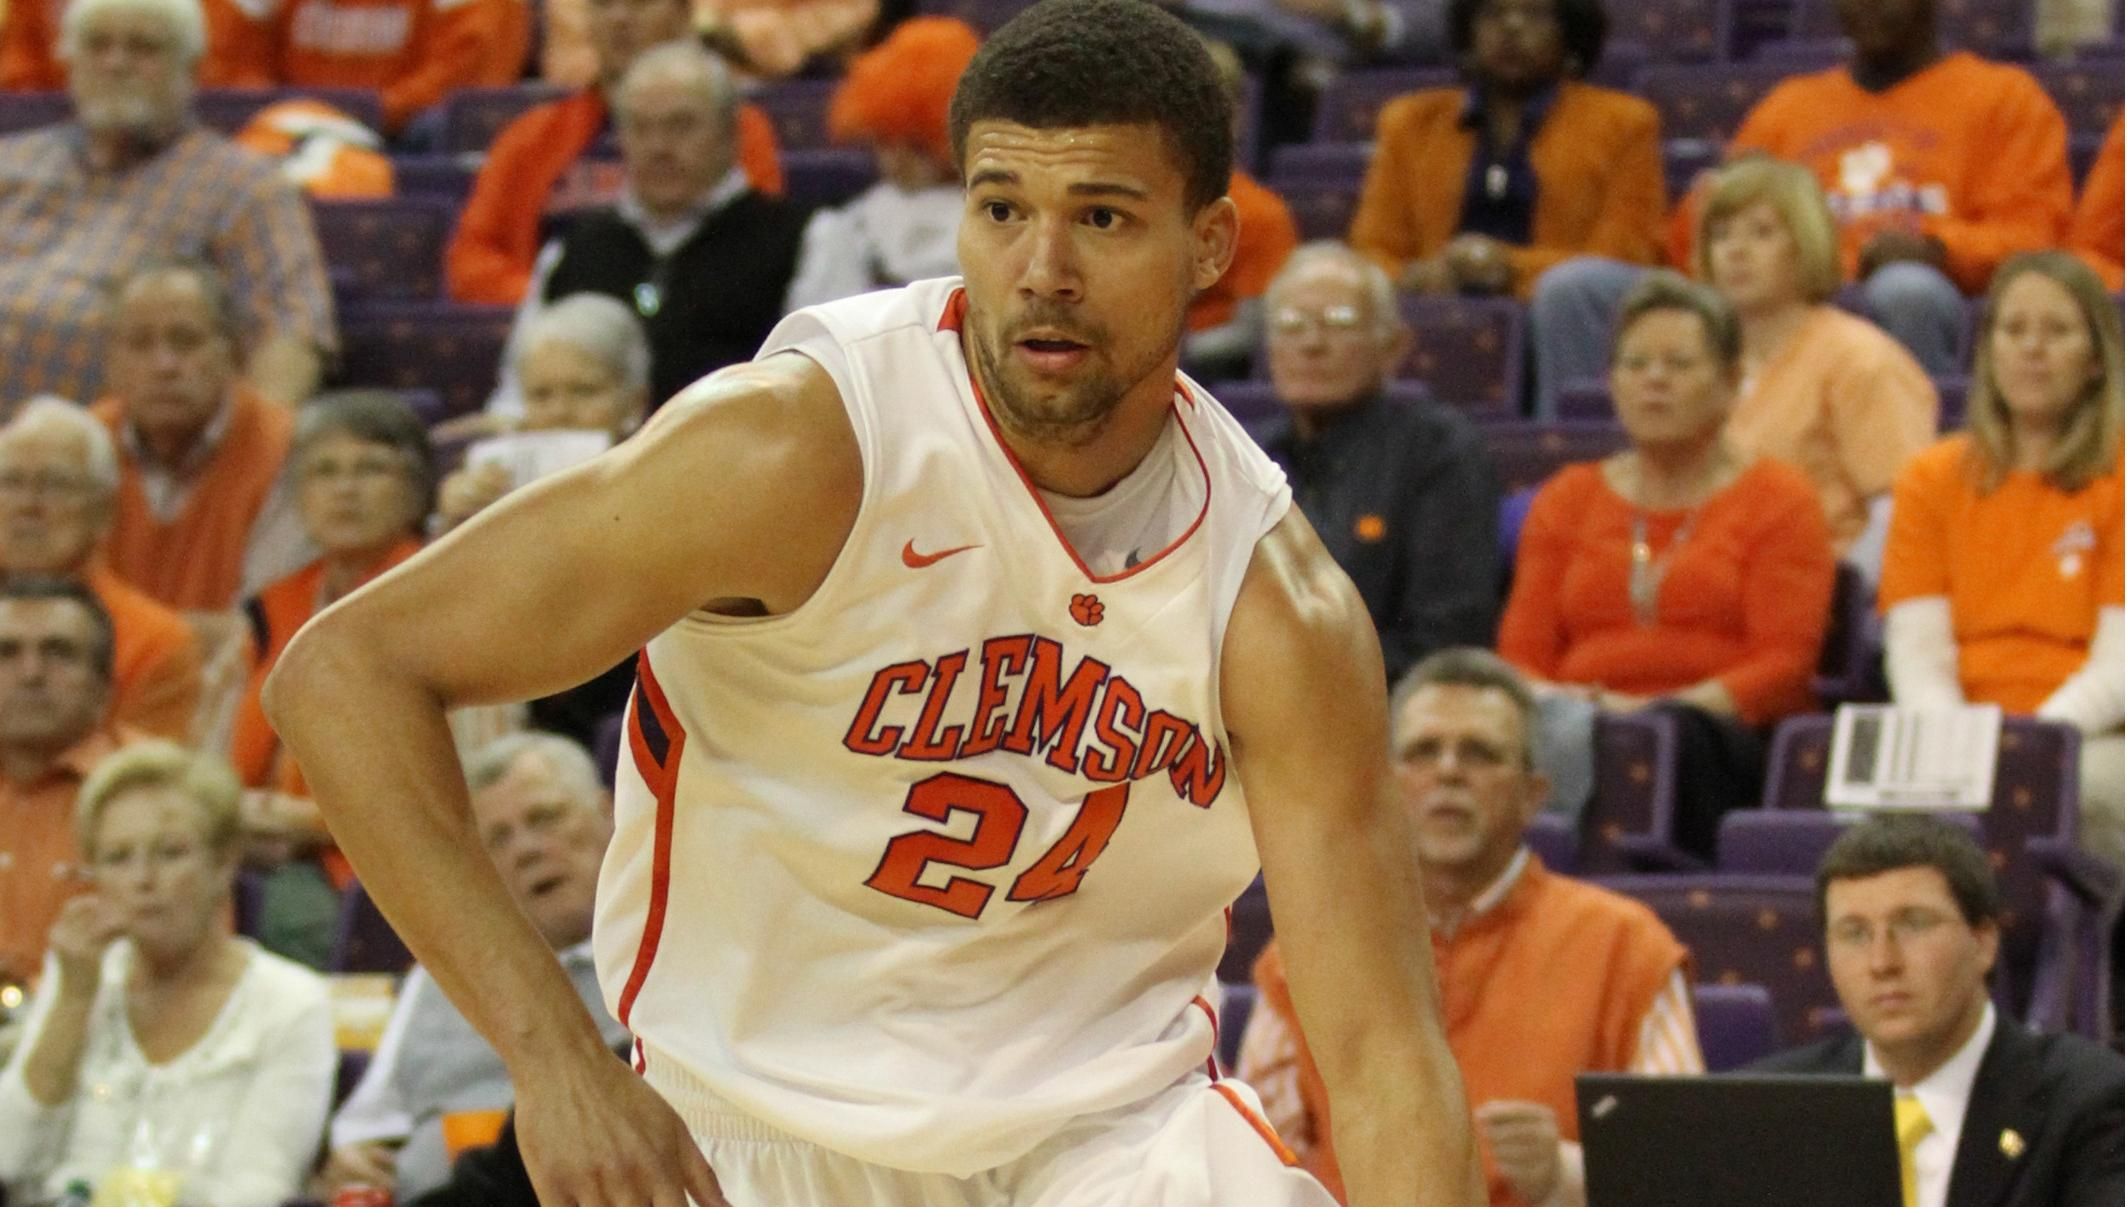 Jennings' Career-High Leads Clemson to 77-70 Victory over Virginia Tech